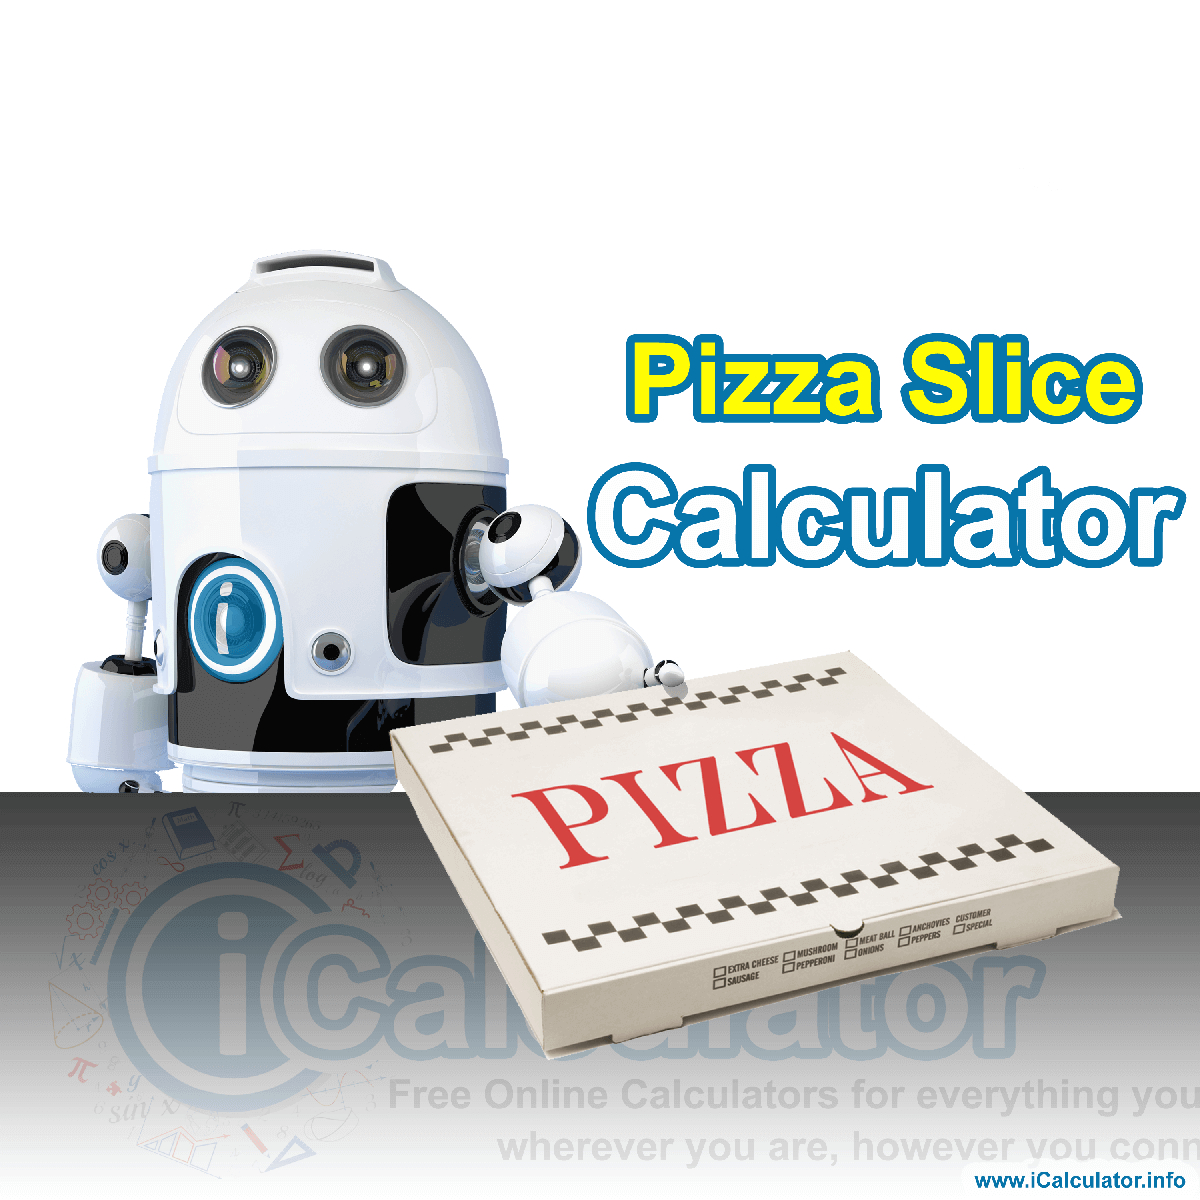 Pizza Calculator. This image shows our pizza delivery robot handing over a delicious large pizza which has been cut into slices after calculating the slices per pizza based on calorie count using the pizza slice forumal and the pizza calculator.